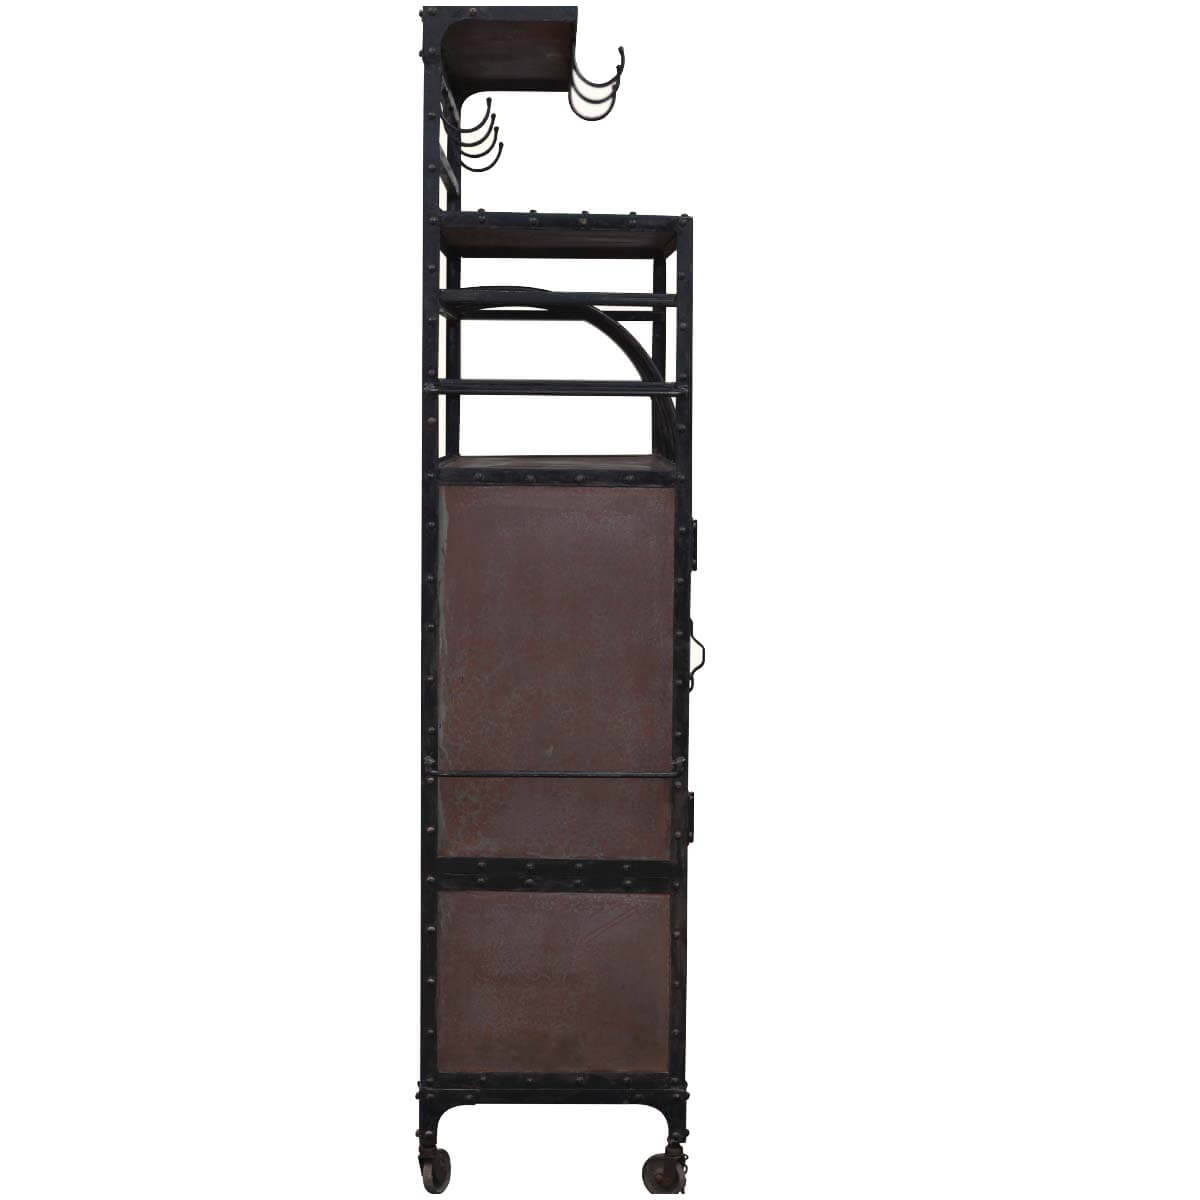 Cabinets Rack Industrial Iron Rolling Pantry Cabinet Rack Storage